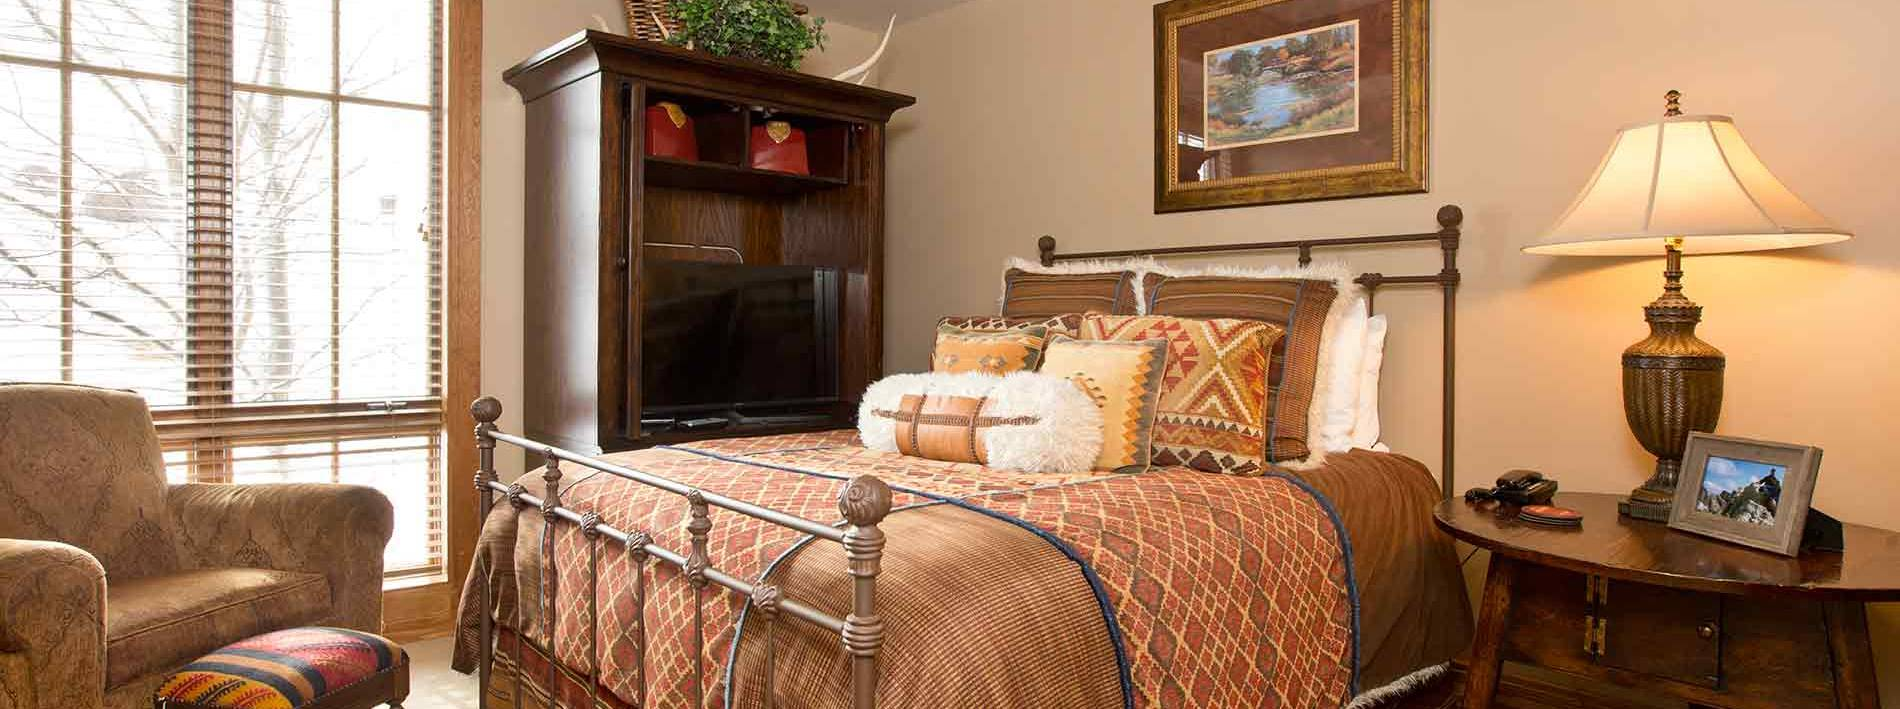 King size bedroom the the Buffalo private home rental